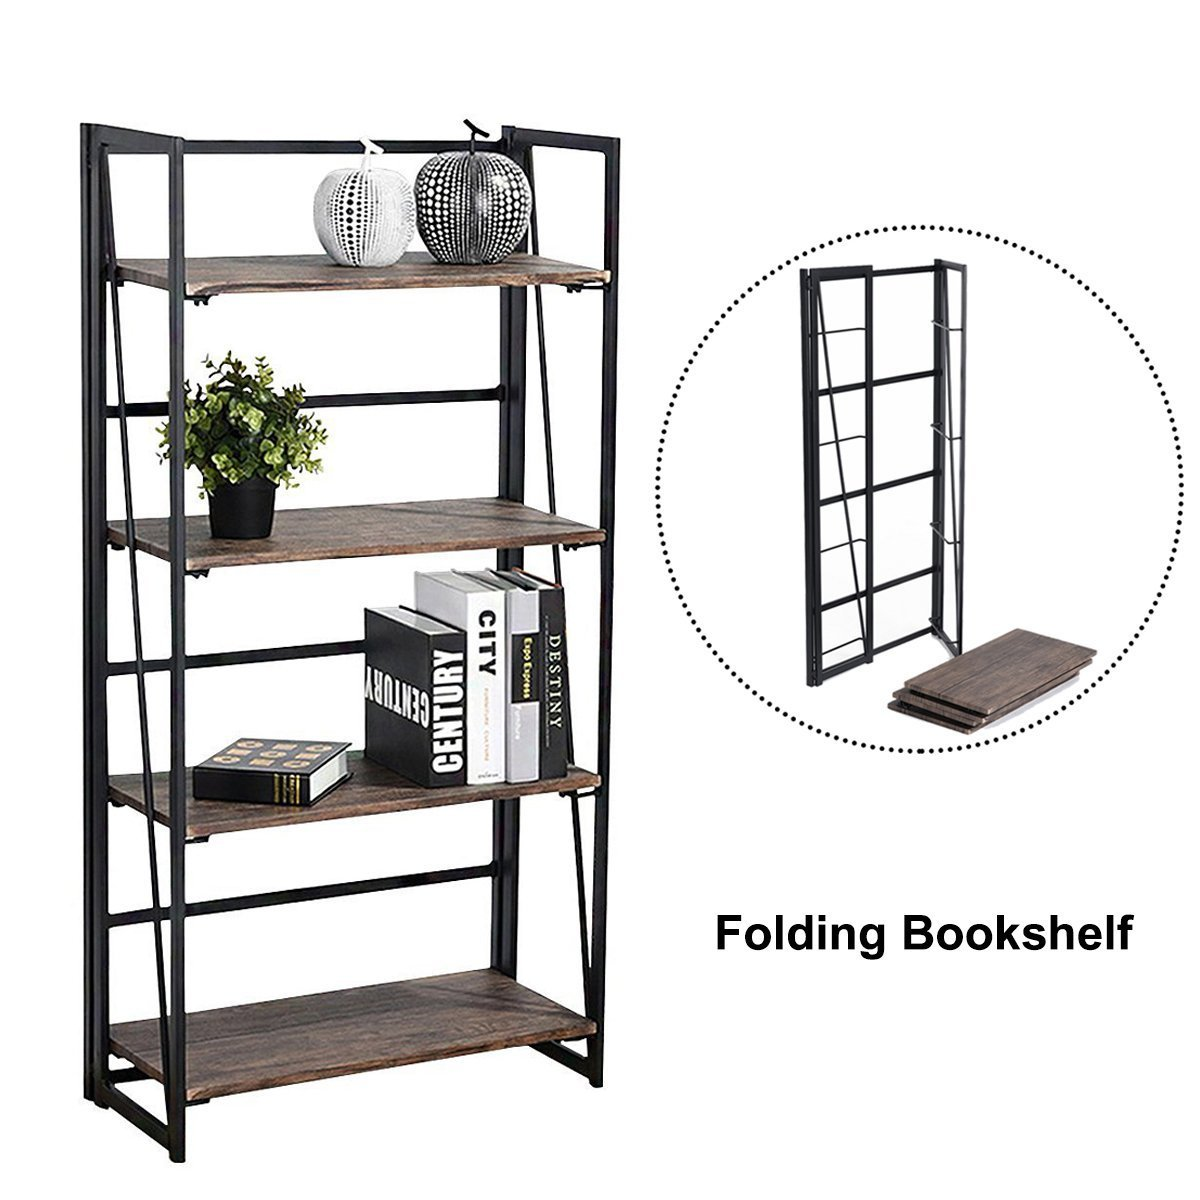 4 Tiers Bookcase Folding Bookshelf Rack Pre-Assembled Modern Home Office Furniture Sturdy Multi-Purpose Shelf Storage Storage Rack, Color Walnut Homycasa